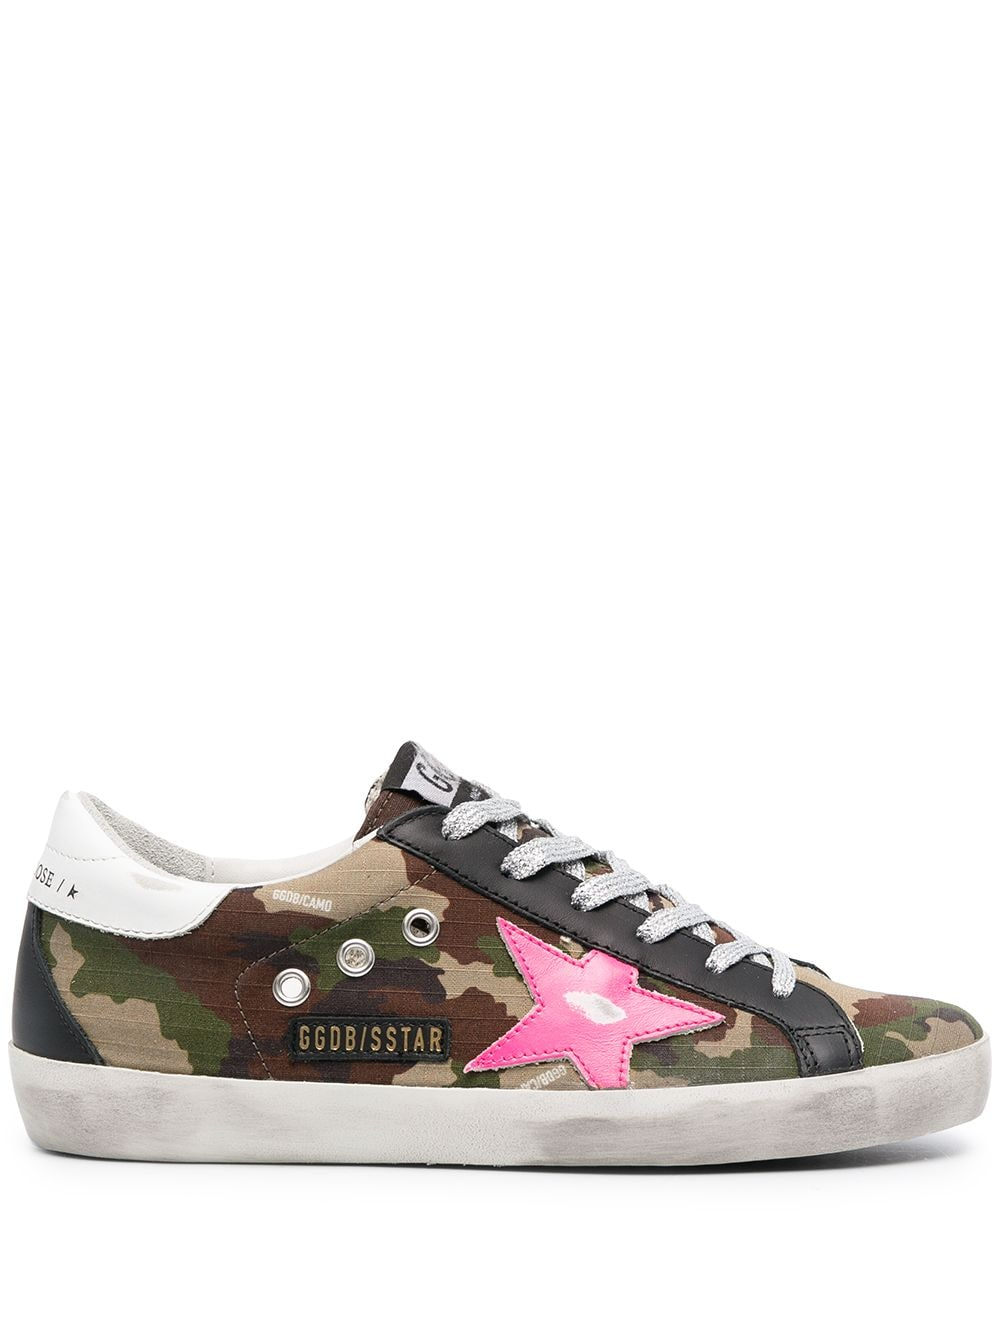 Picture of Golden Goose Deluxe Brand | Super-Star Camouflage Sneakers